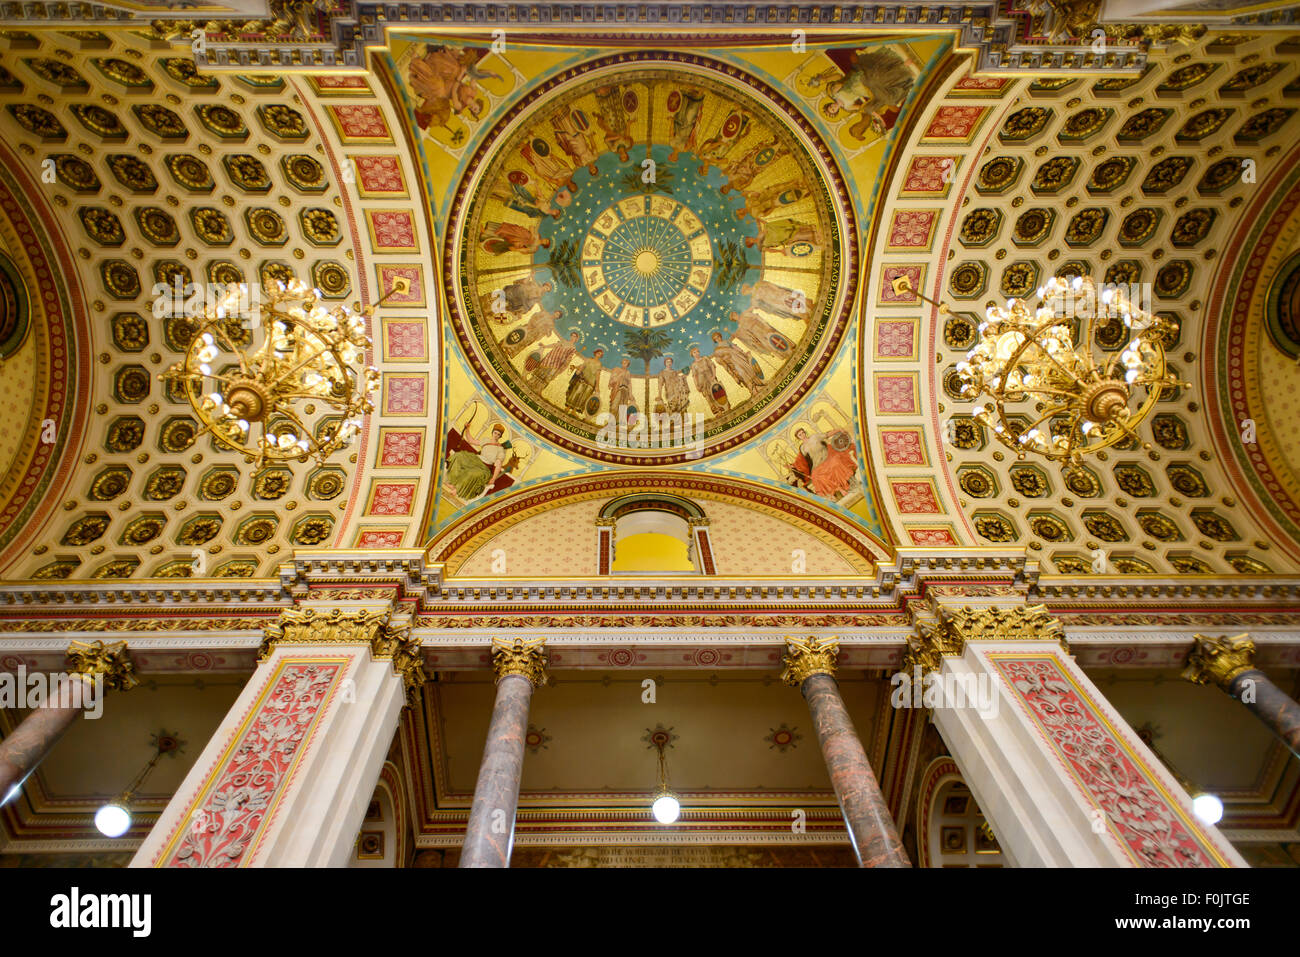 The ceiling of the Grand Staircase at the Foreign and Commonwealth Office, London, England, UK Stock Photo